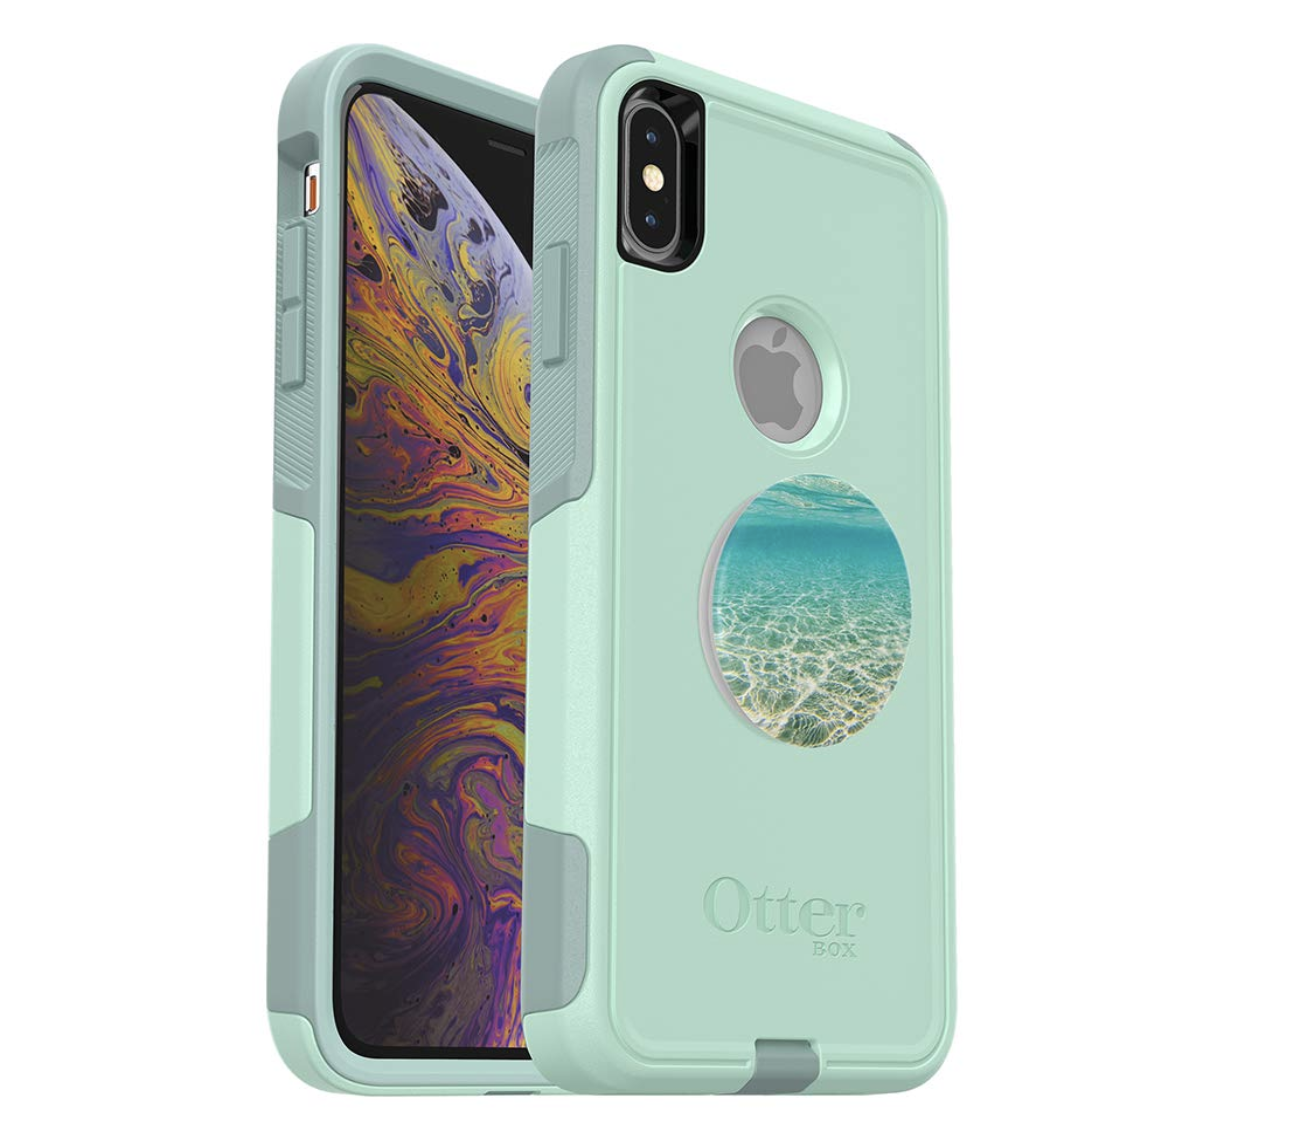 OtterBox iPhone Case With Popsocket PopGrip